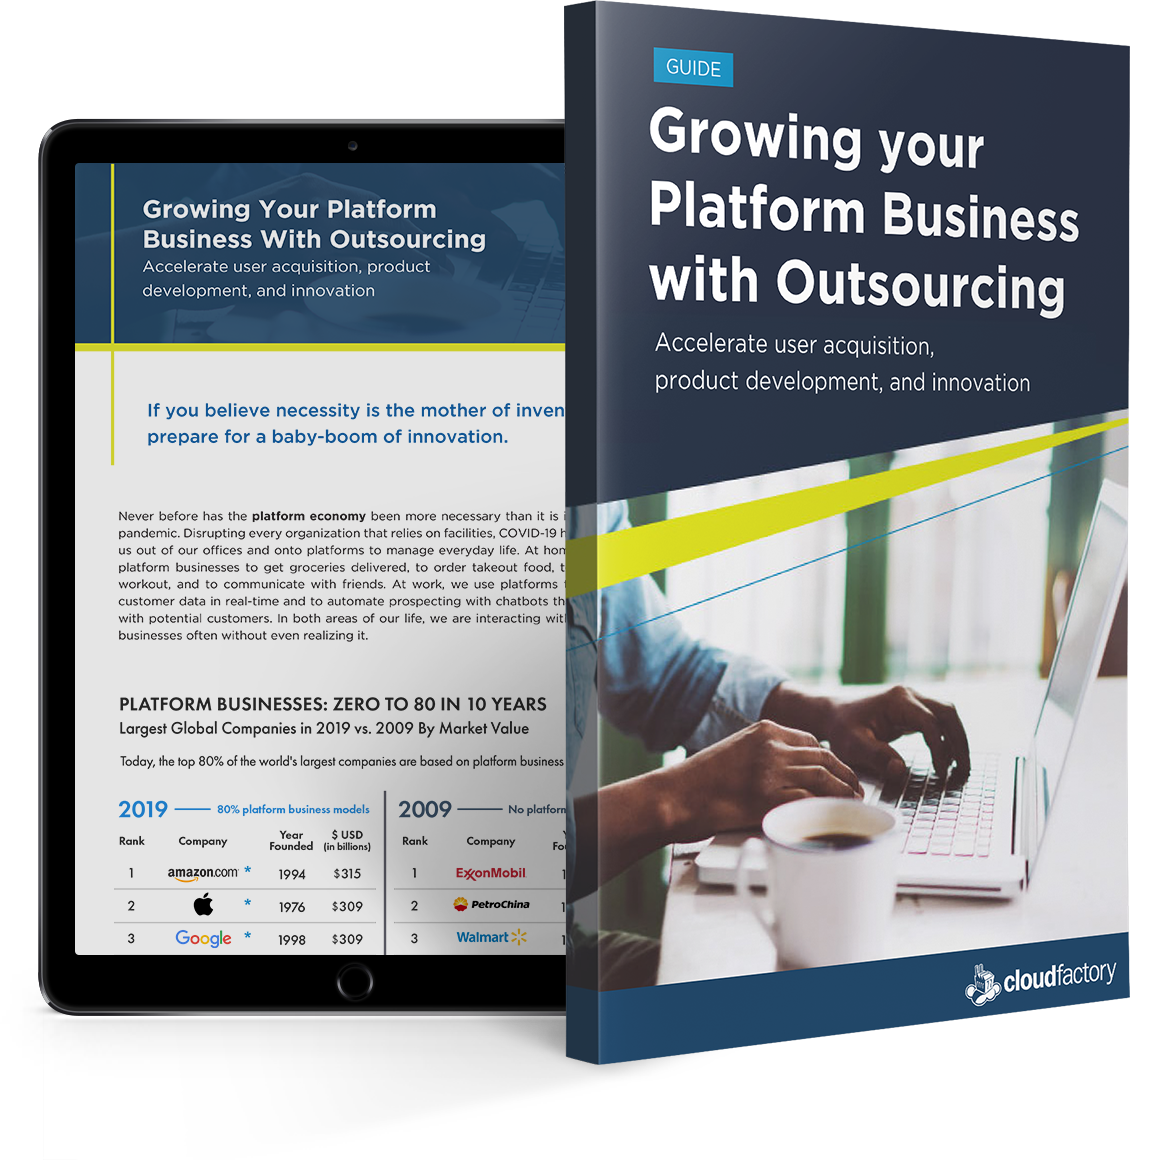 Growning Your Platform Business With Outsourcing